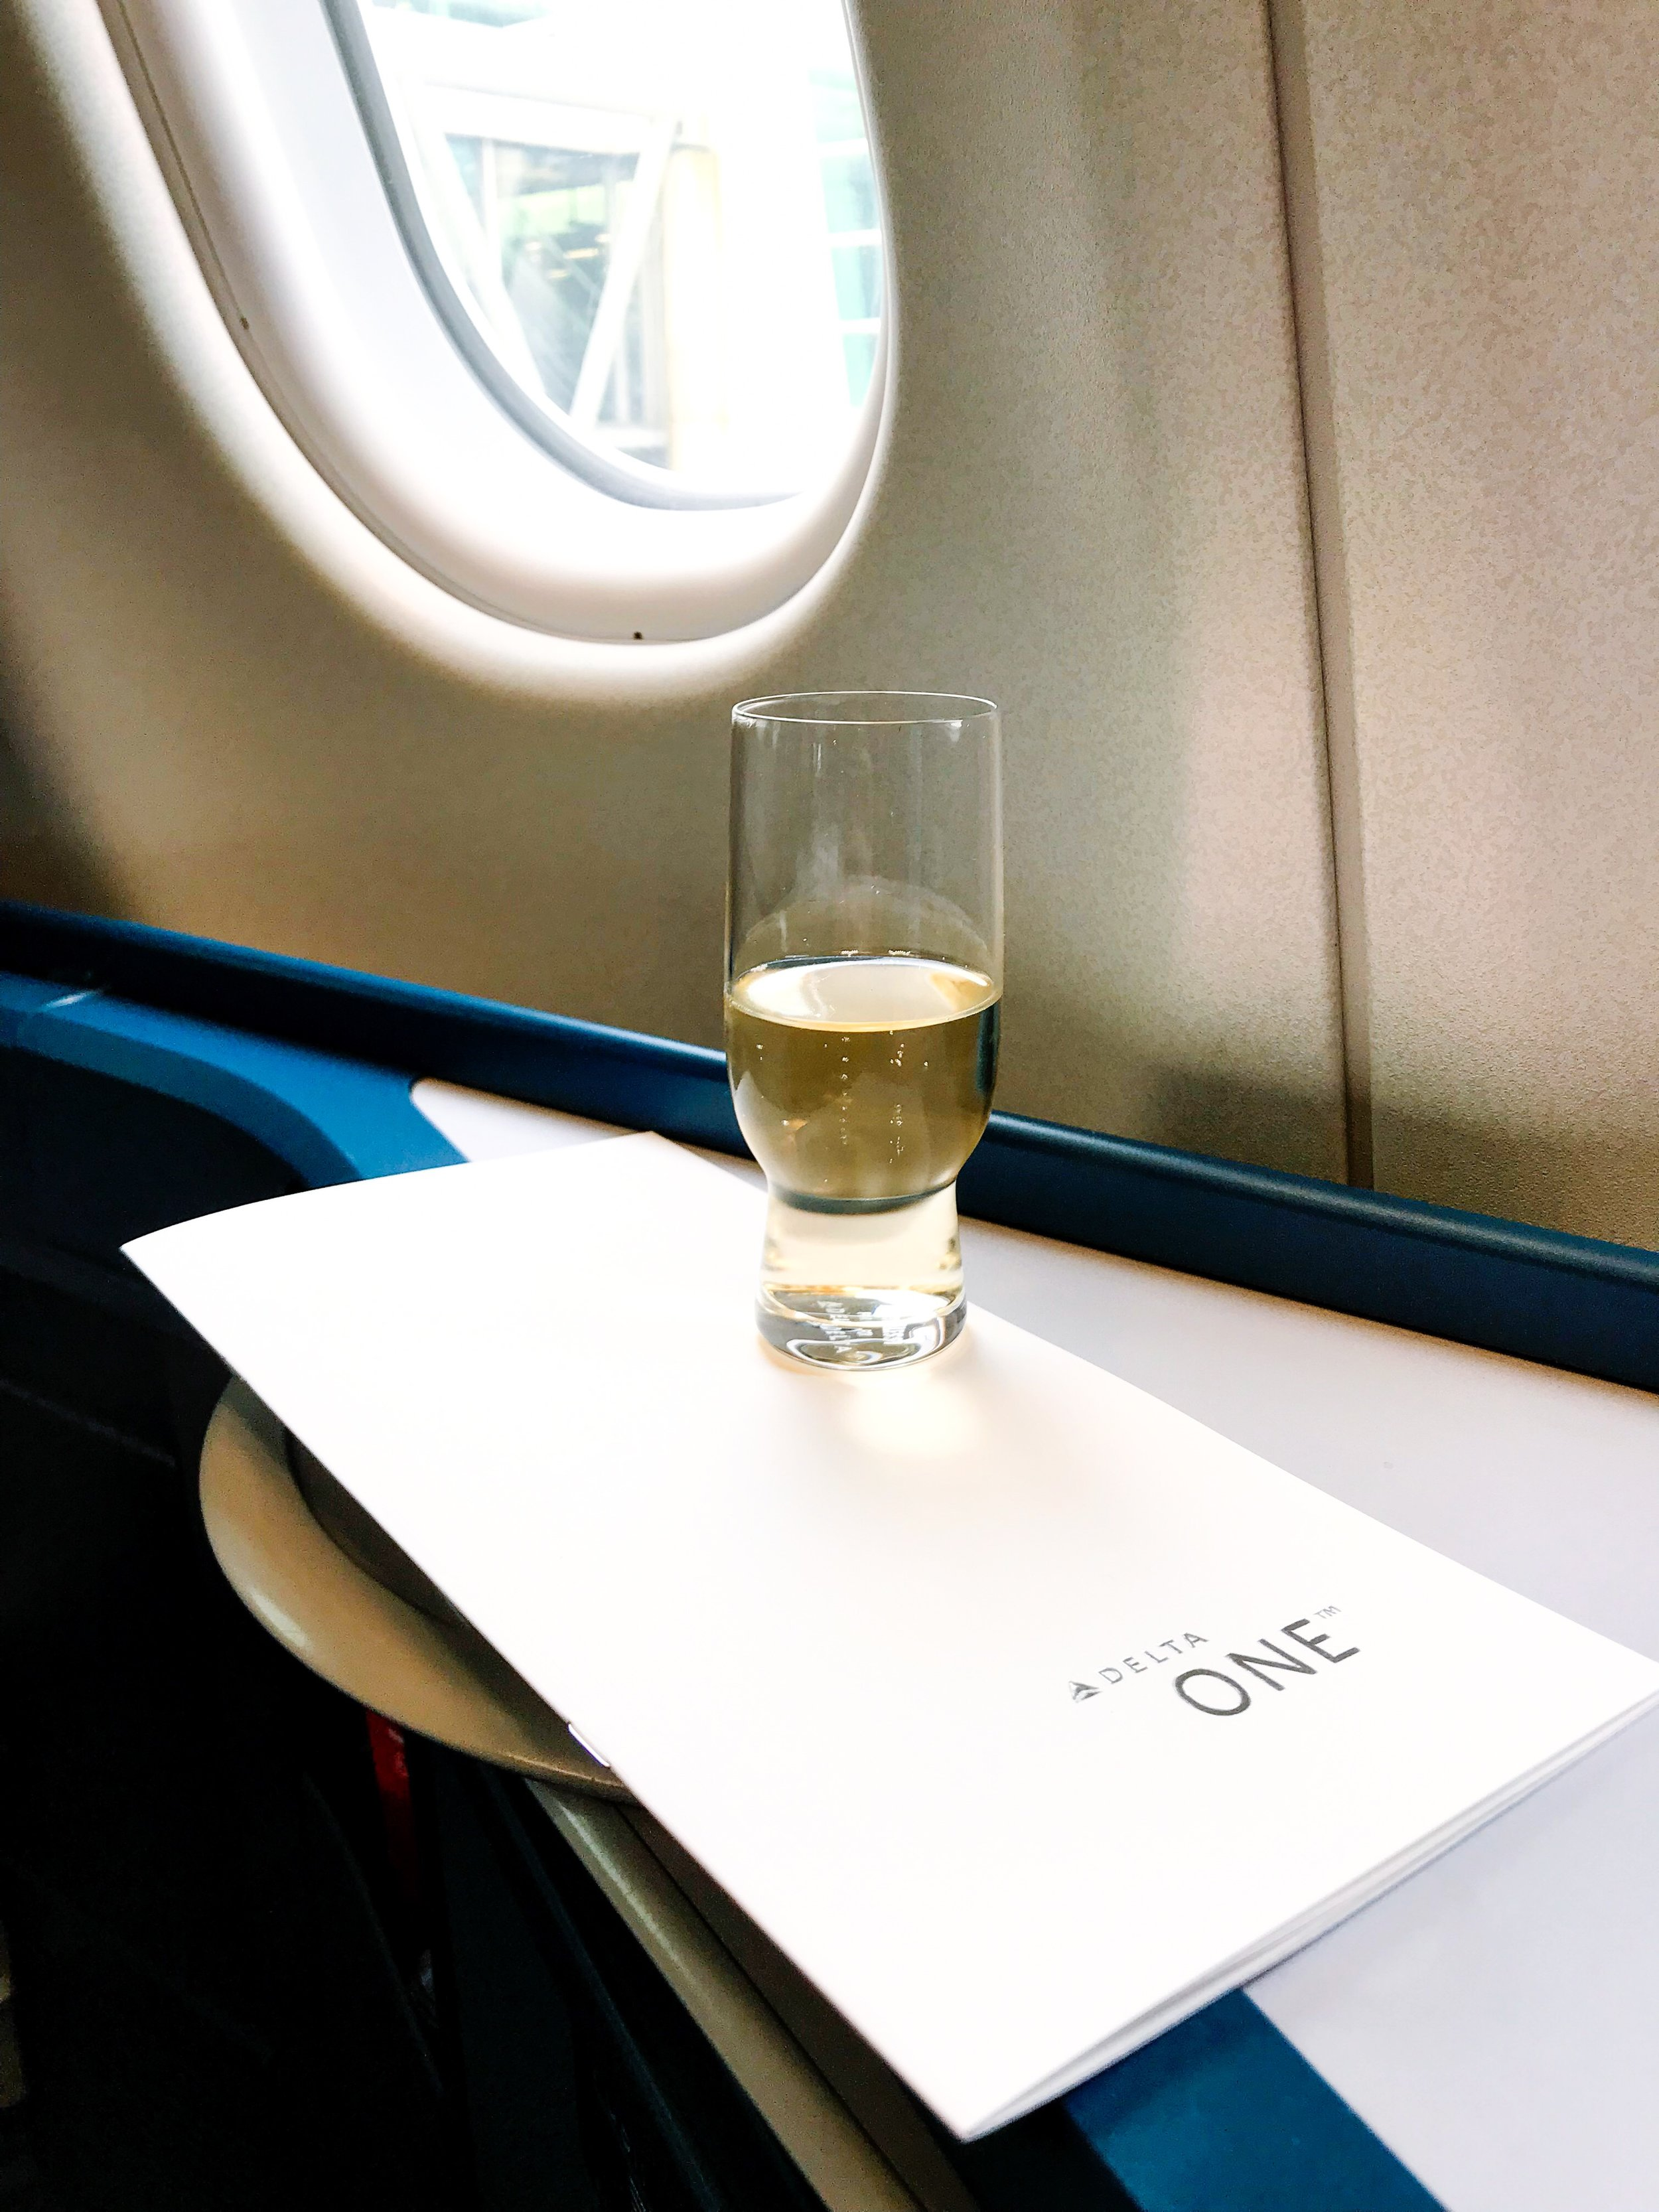 Pre-departure service consisted of champagne or orange juice. Meal requests were taken before departure as well.